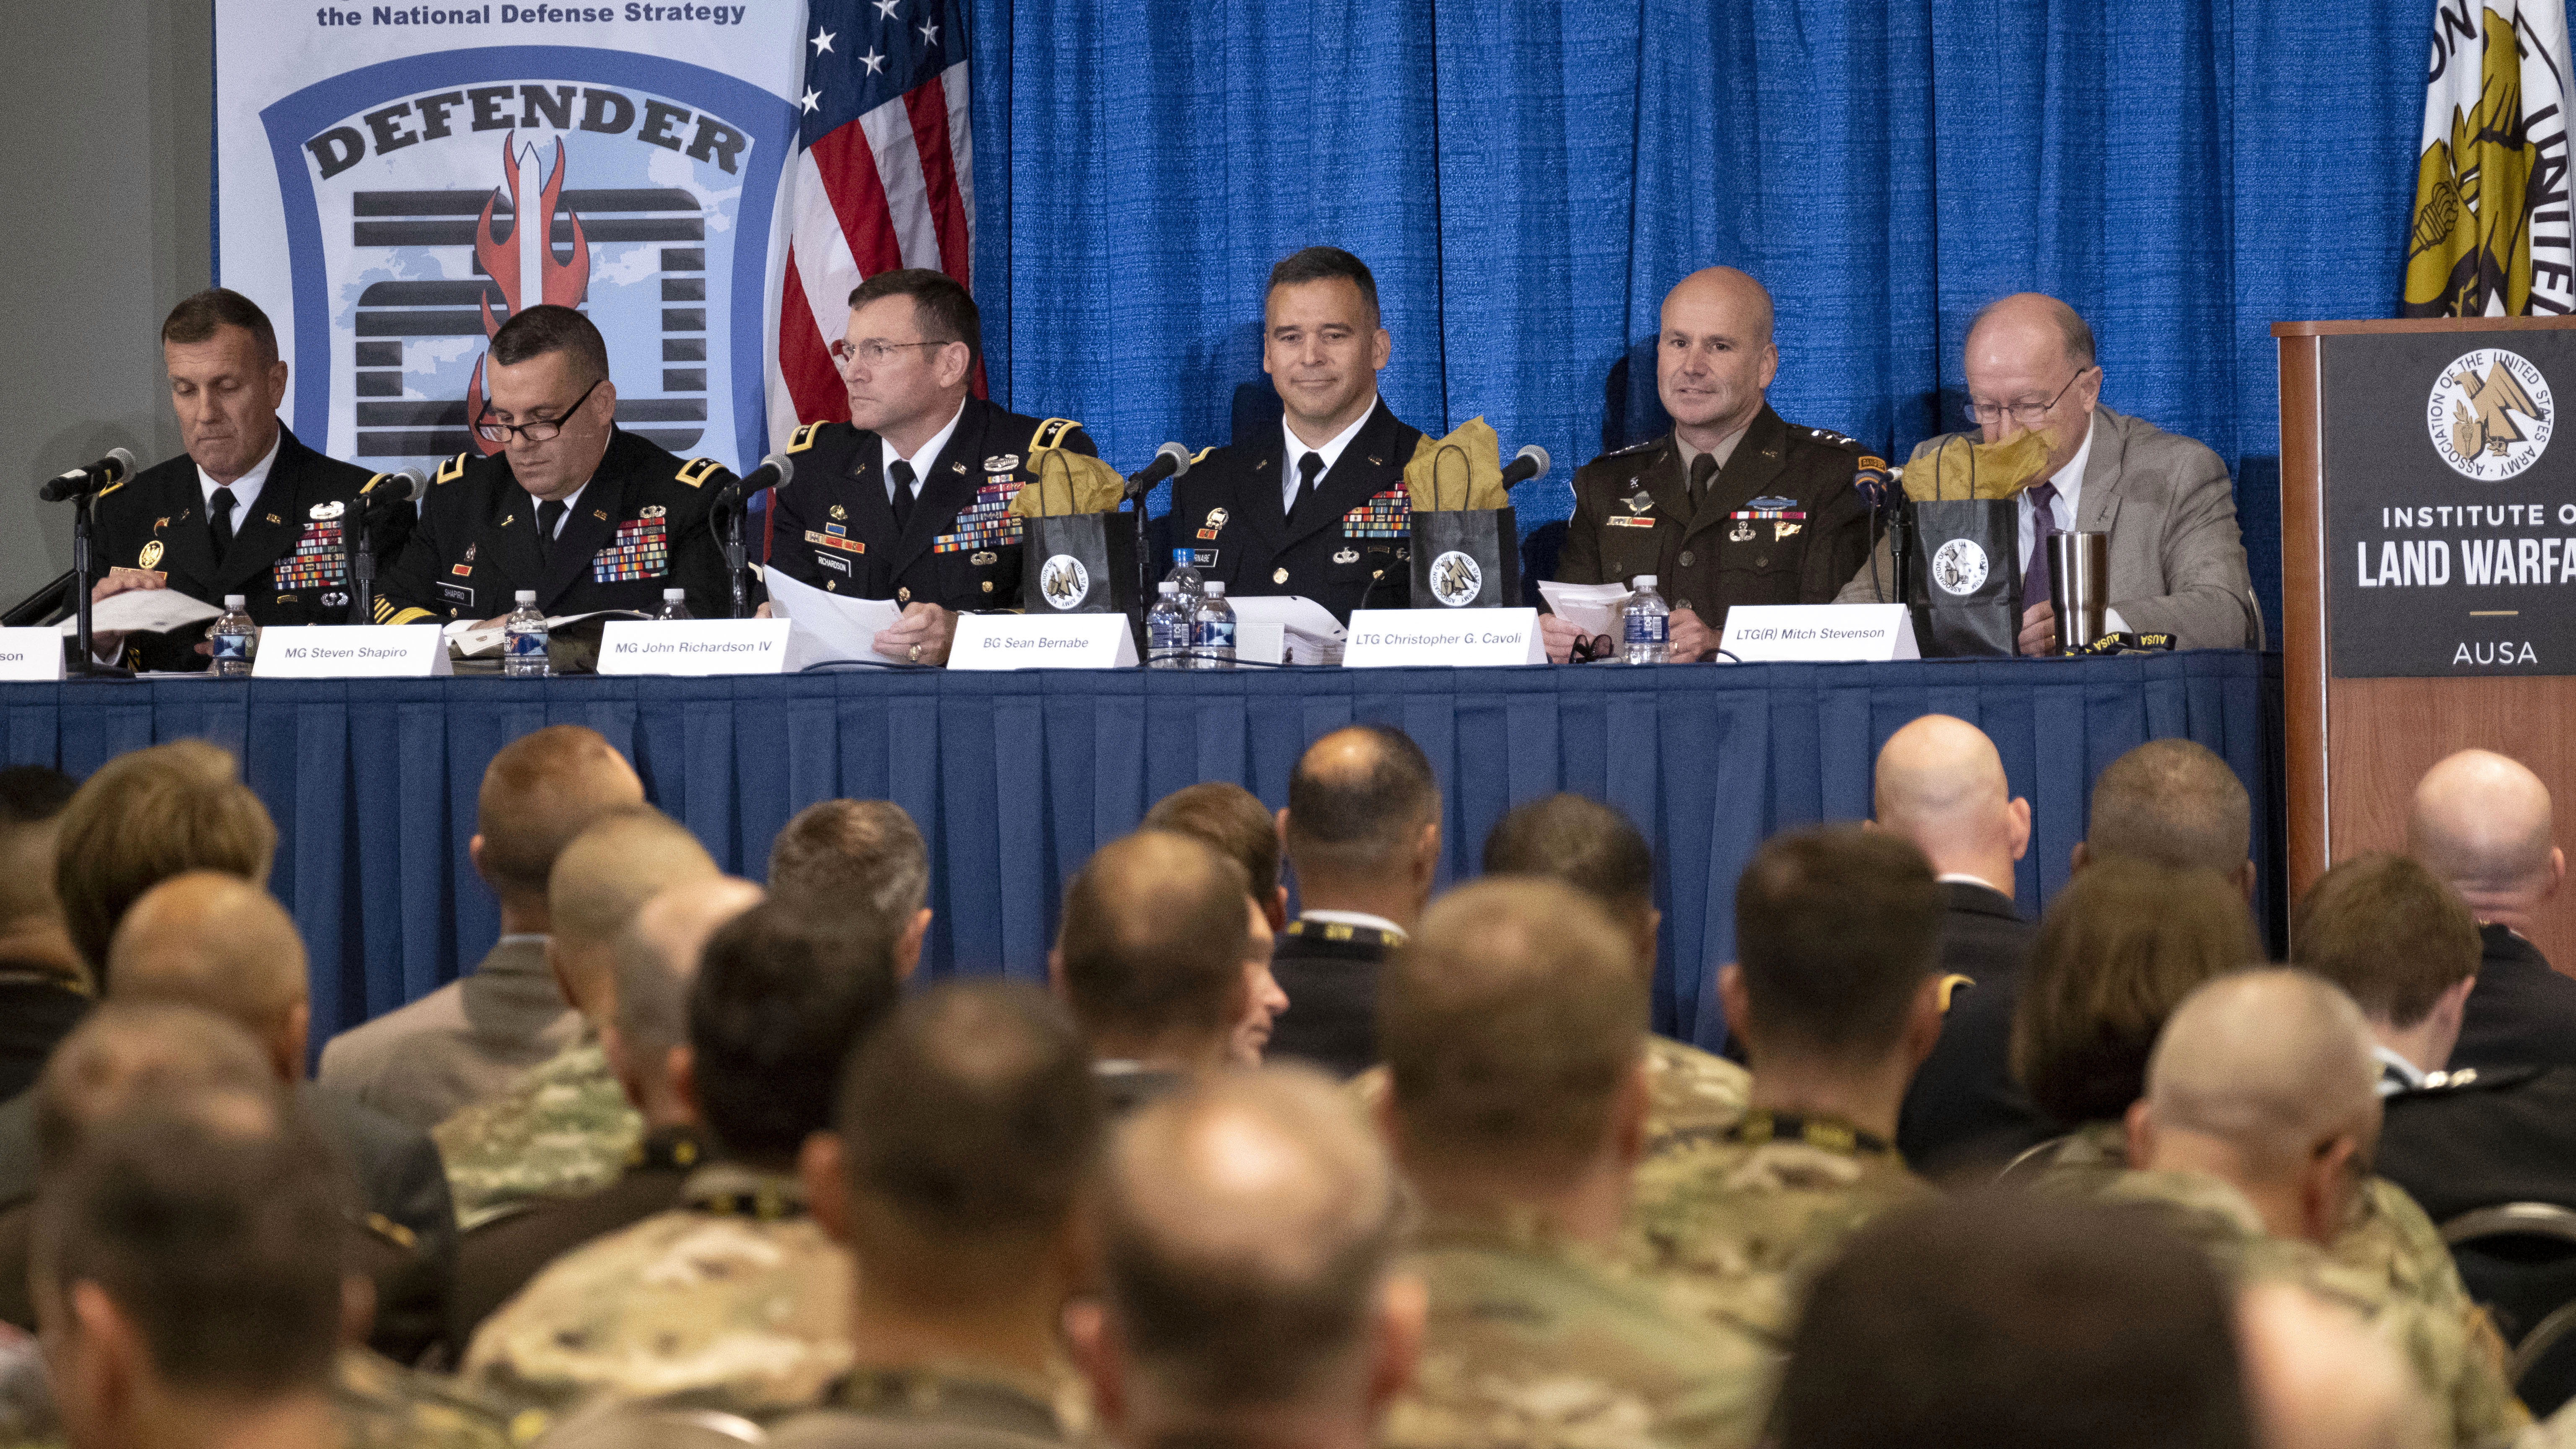 A panel of experts, including Lt. Gen. J.T. Thomson, left, commanding general of NATO Allied Land Command, and Lt. Gen. Christopher Cavoli, second from right, commanding general of U.S. Army Europe, discuss the upcoming Defender-Europe 2020 exercise.